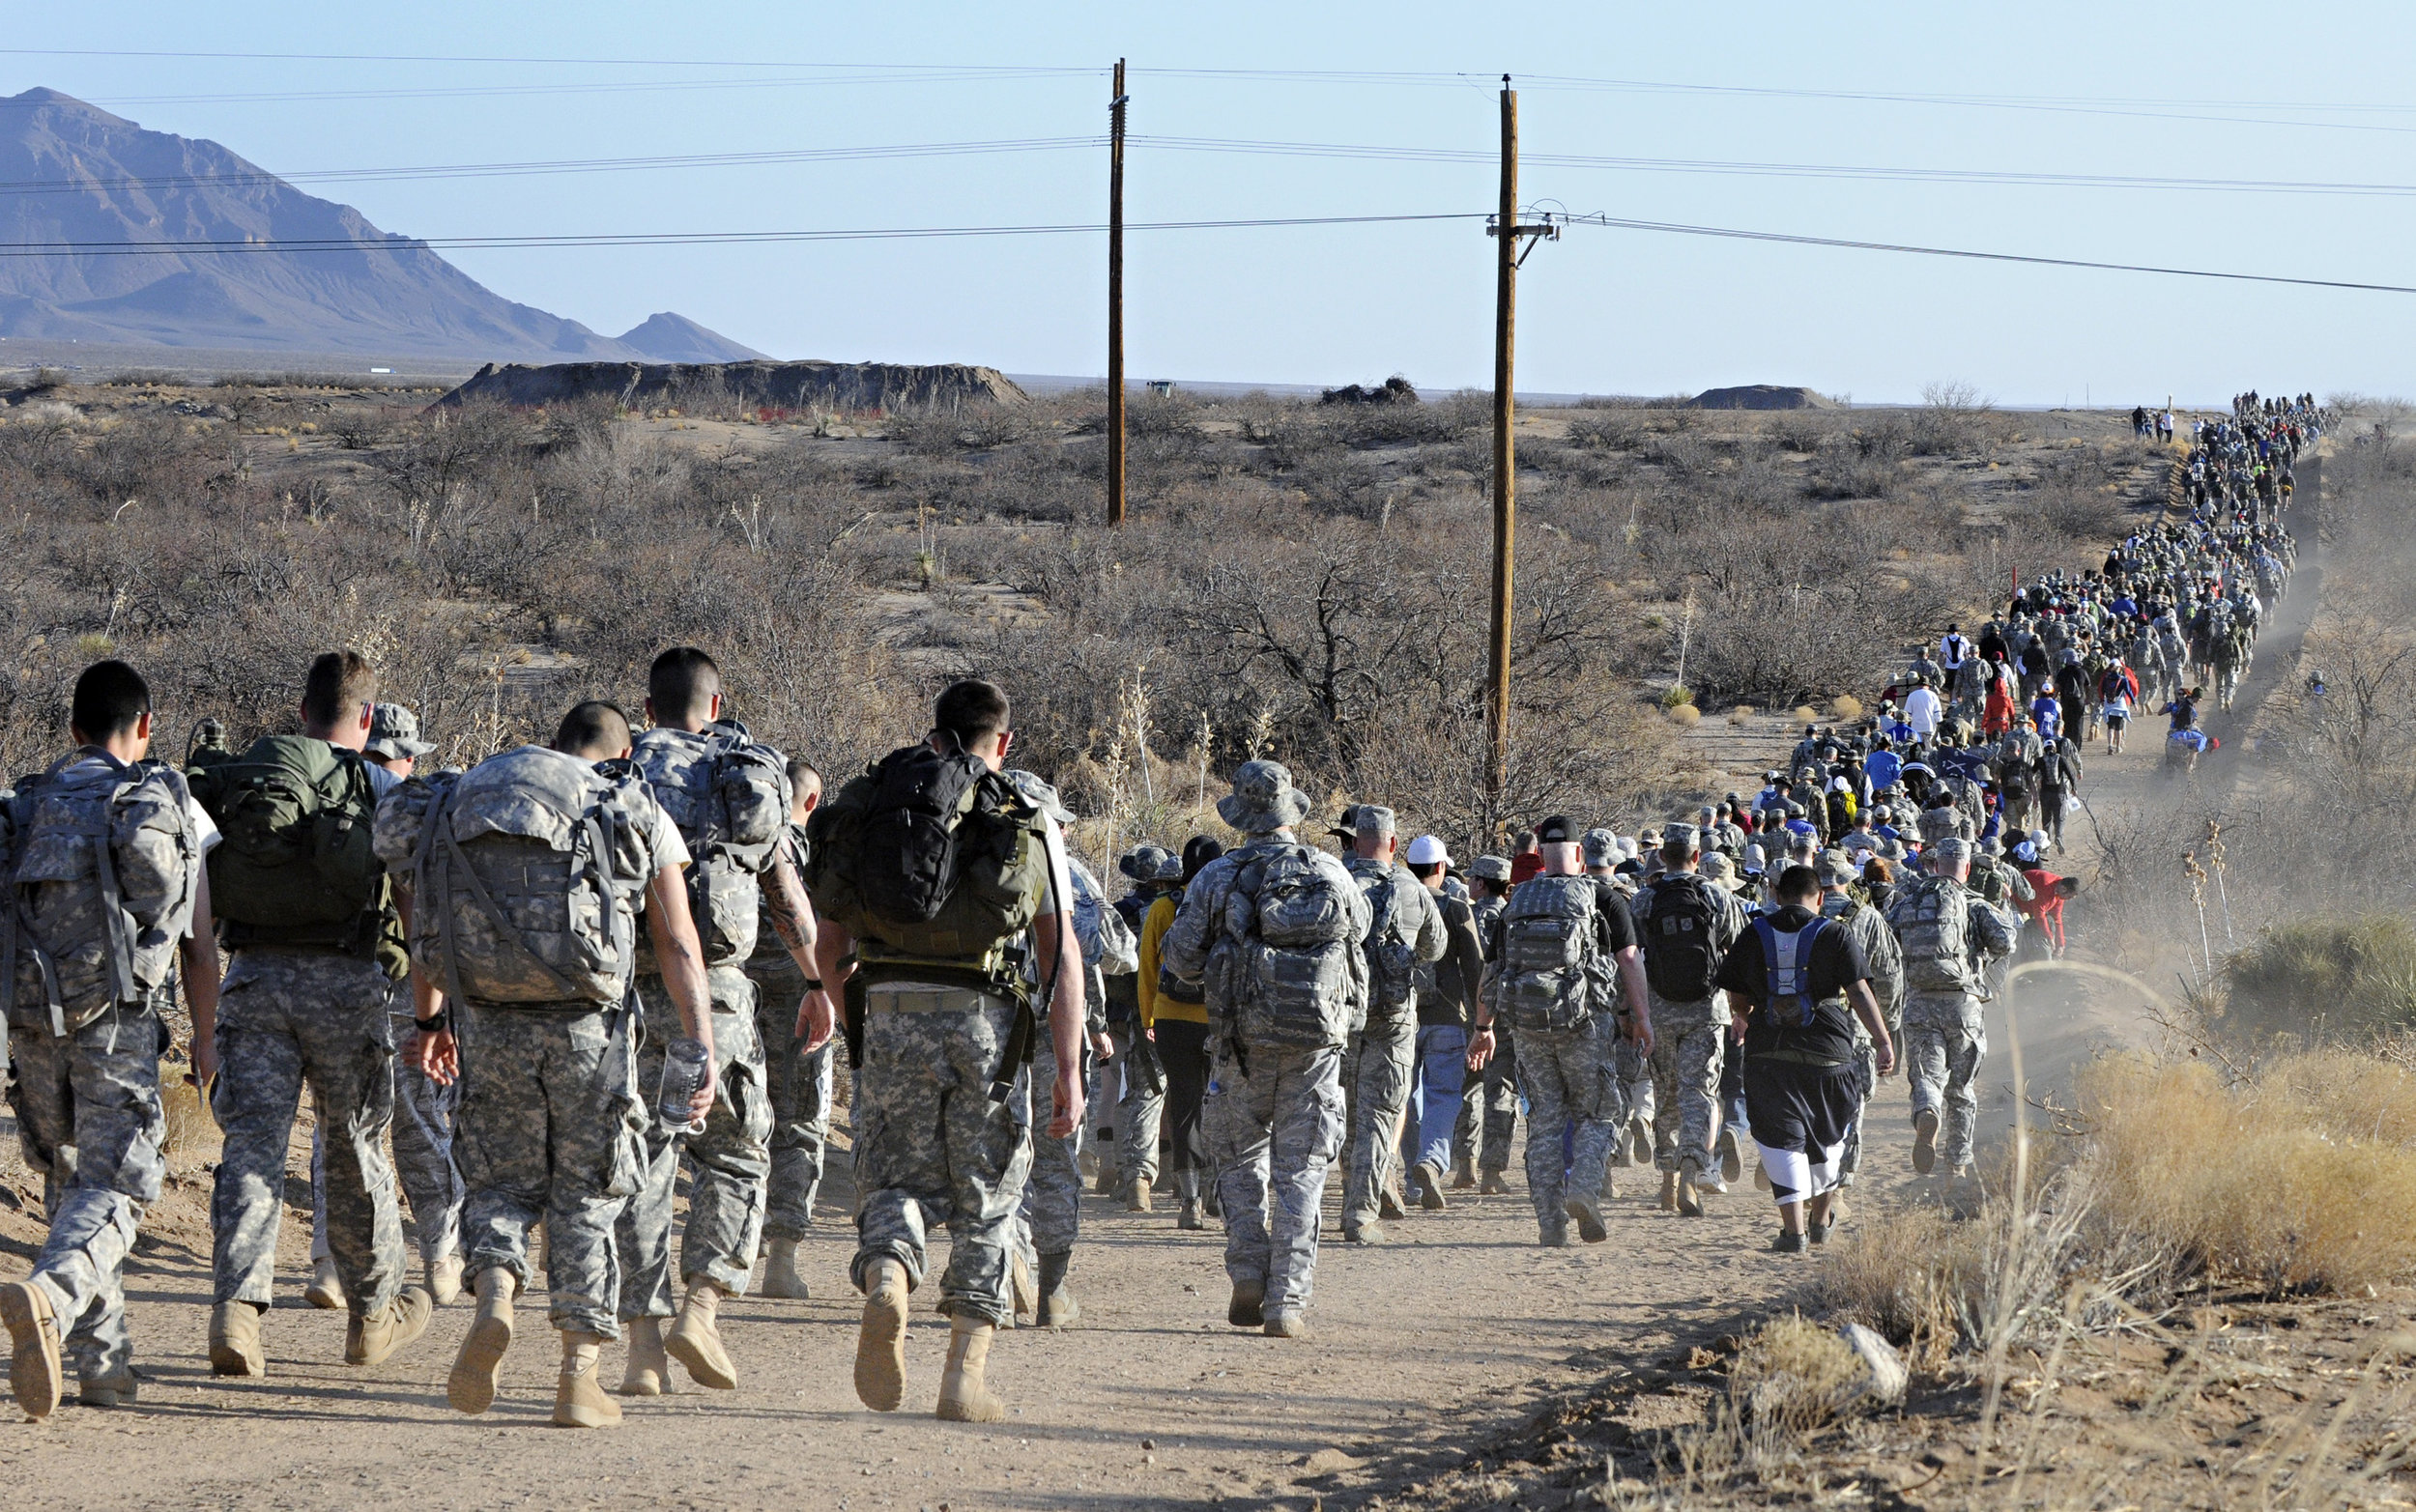 Walkers hike through the White Sands Missile Range during the 22nd Annual Bataan Memorial Death March, Sunday, March 27, 2011. (Morgan Petroski/Albuquerque Journal)